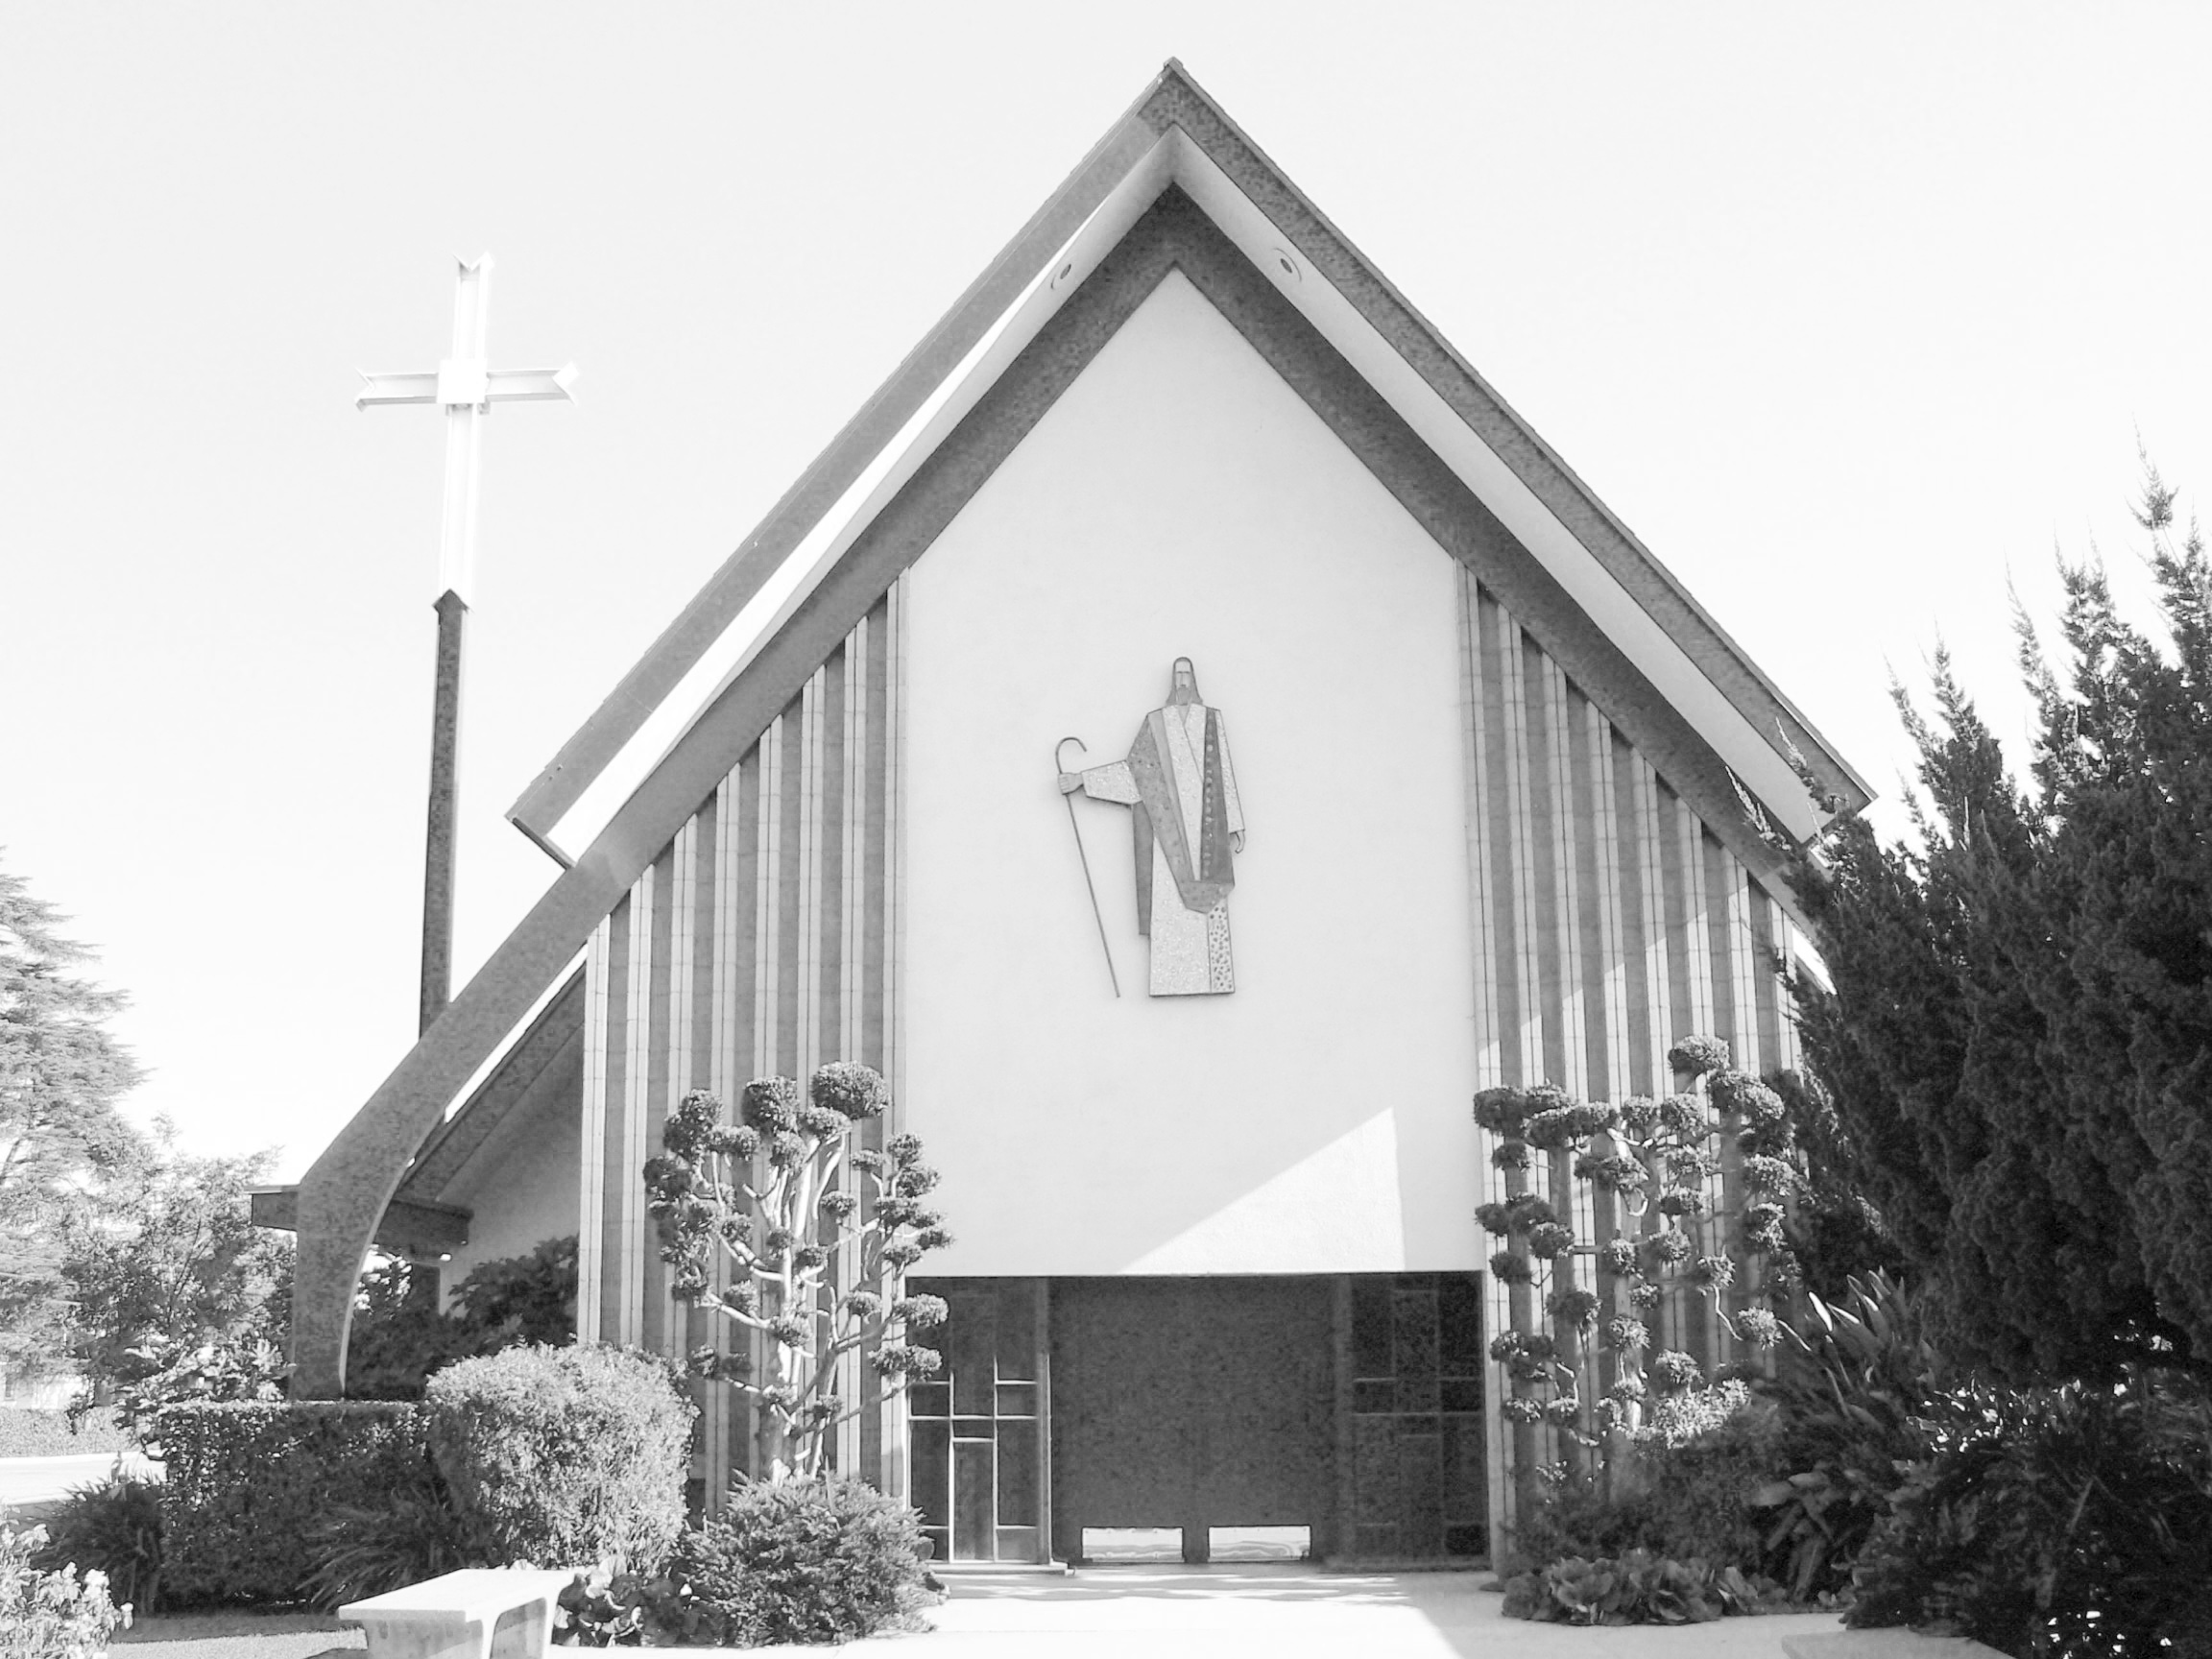 City Blessing Church facility in Temple City. First service held in 1999.